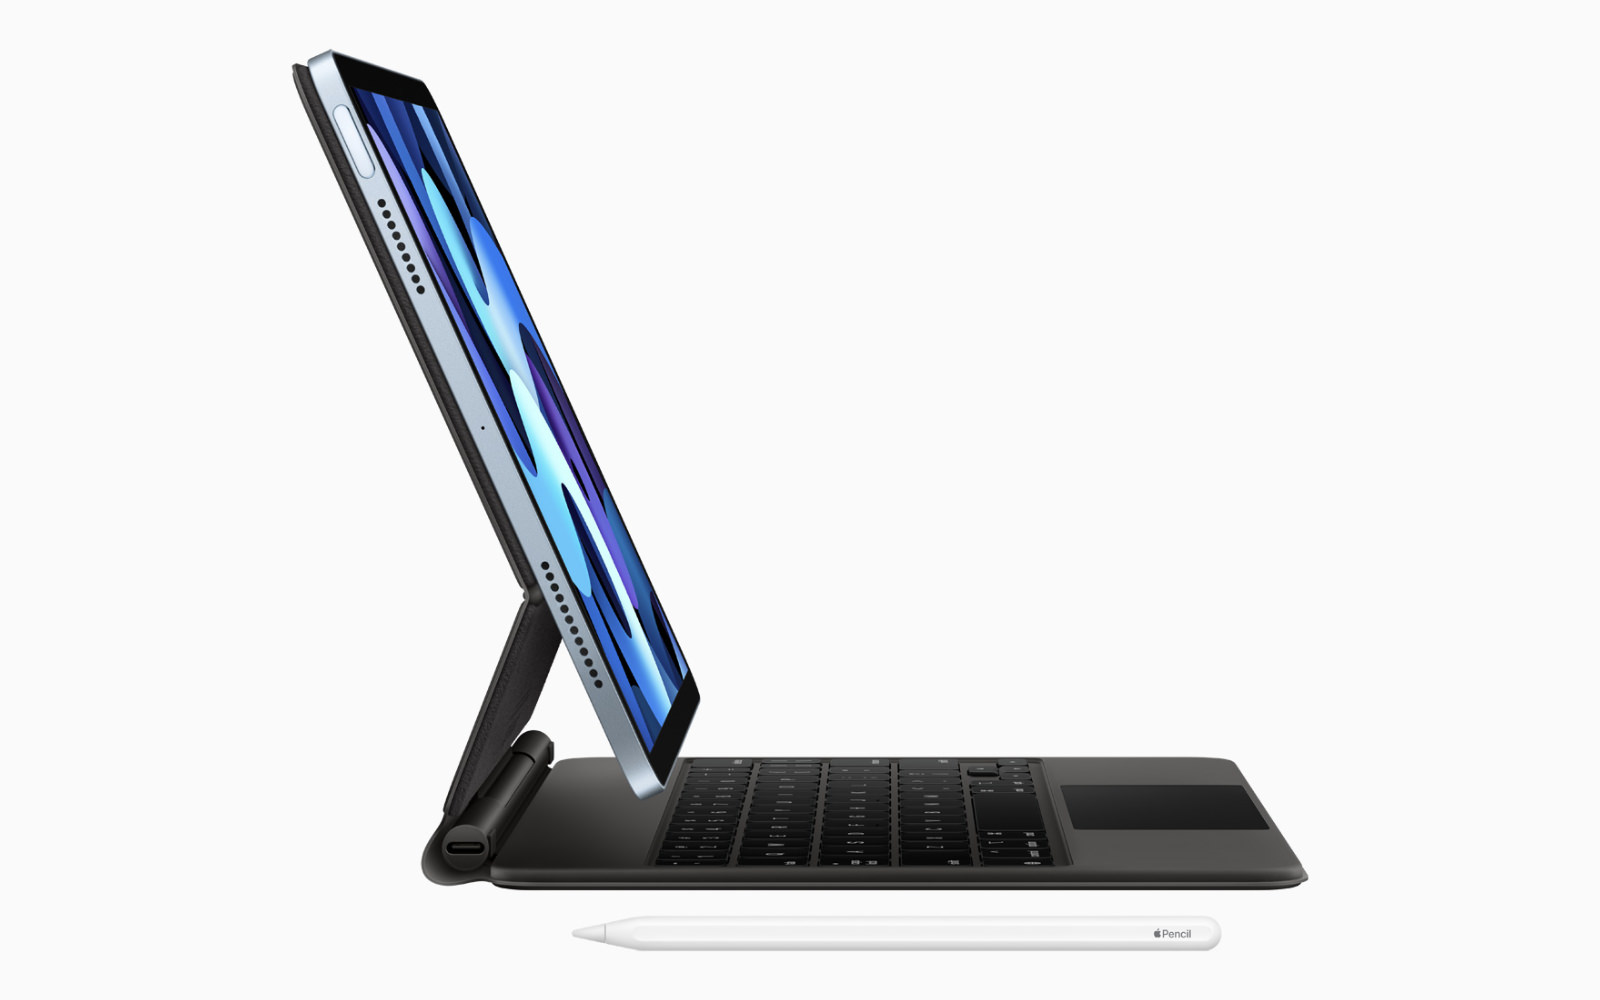 ipad-air-4thgen-magickeyboard-and-applepencil.jpg